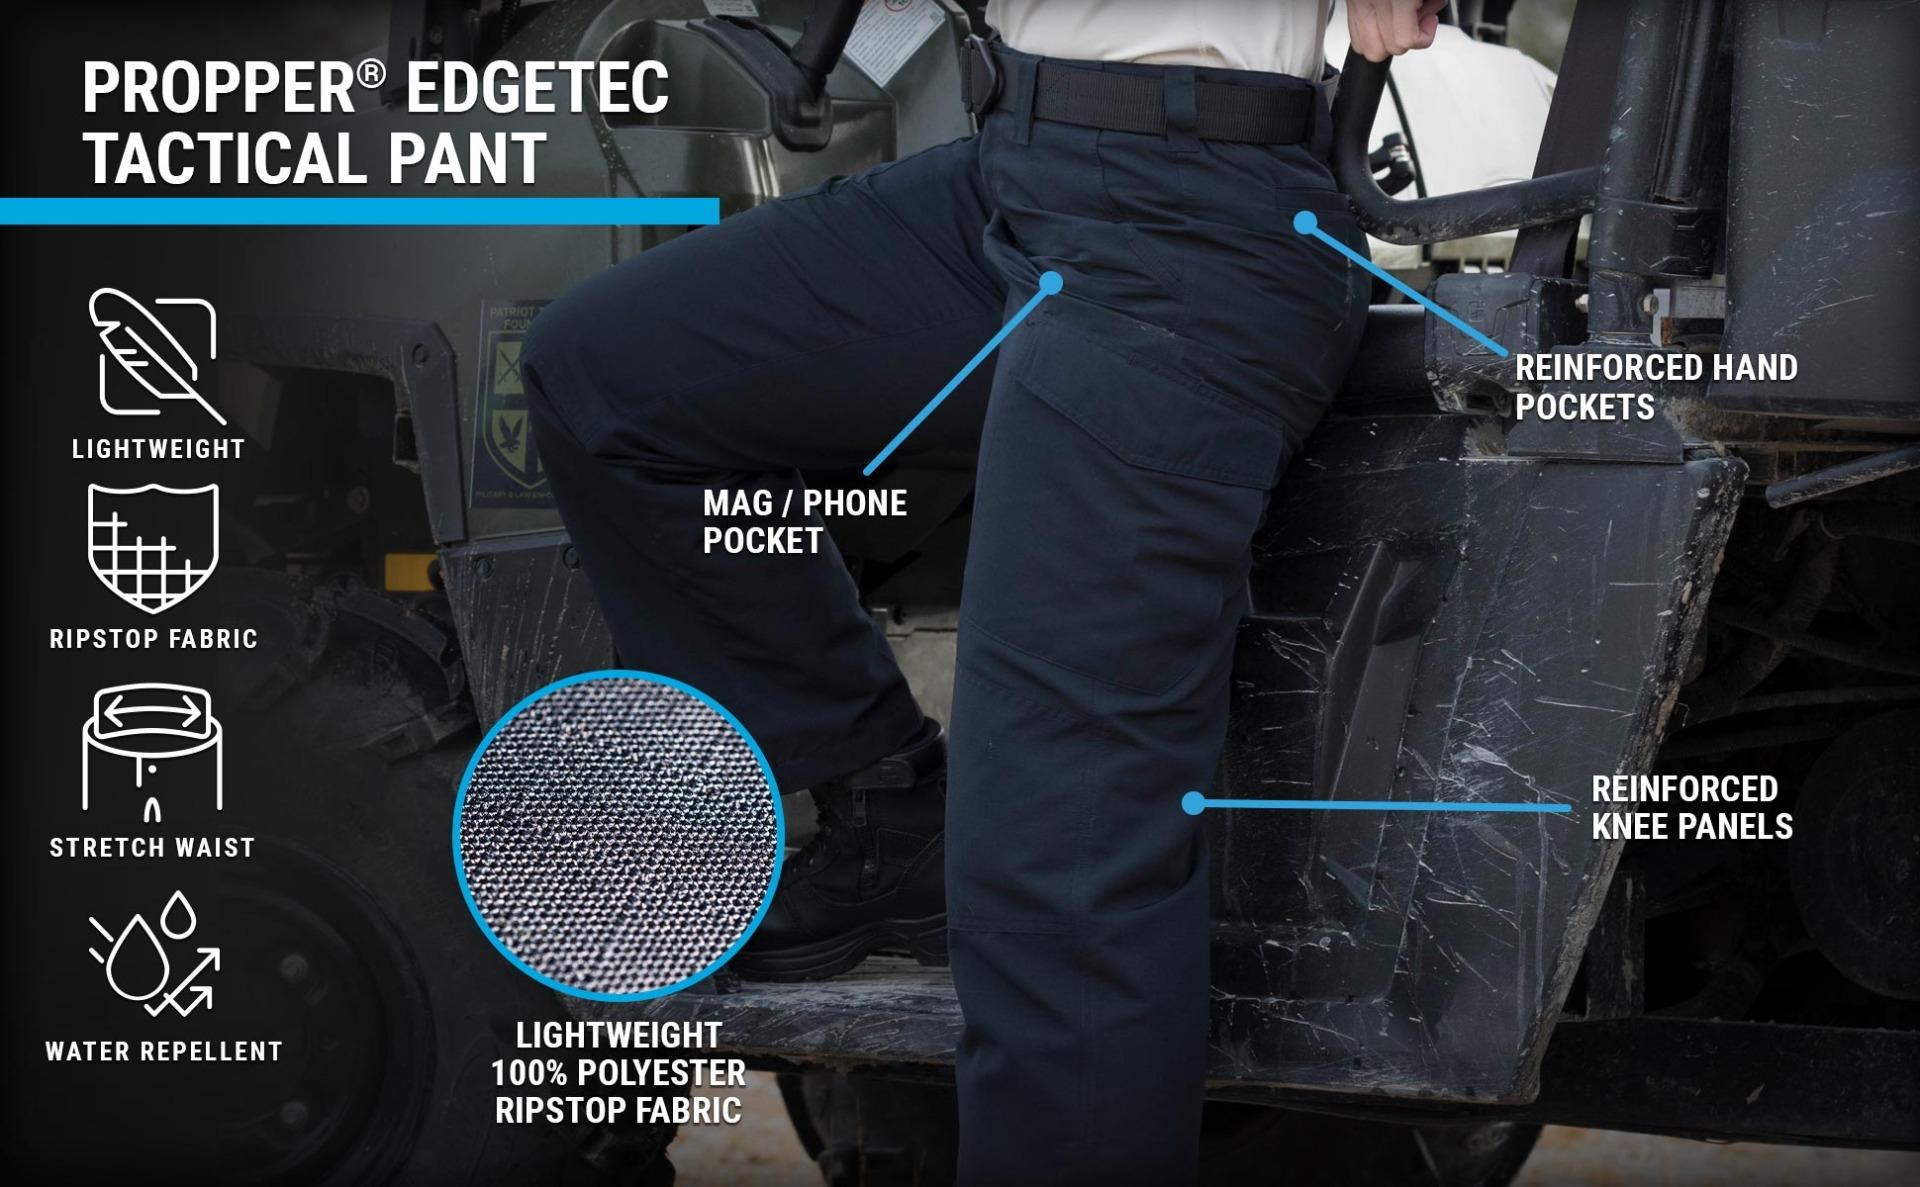 Navy women's edgetec pants are lightweight ripstop with water repellent, cell phone pocket and reinforced knees